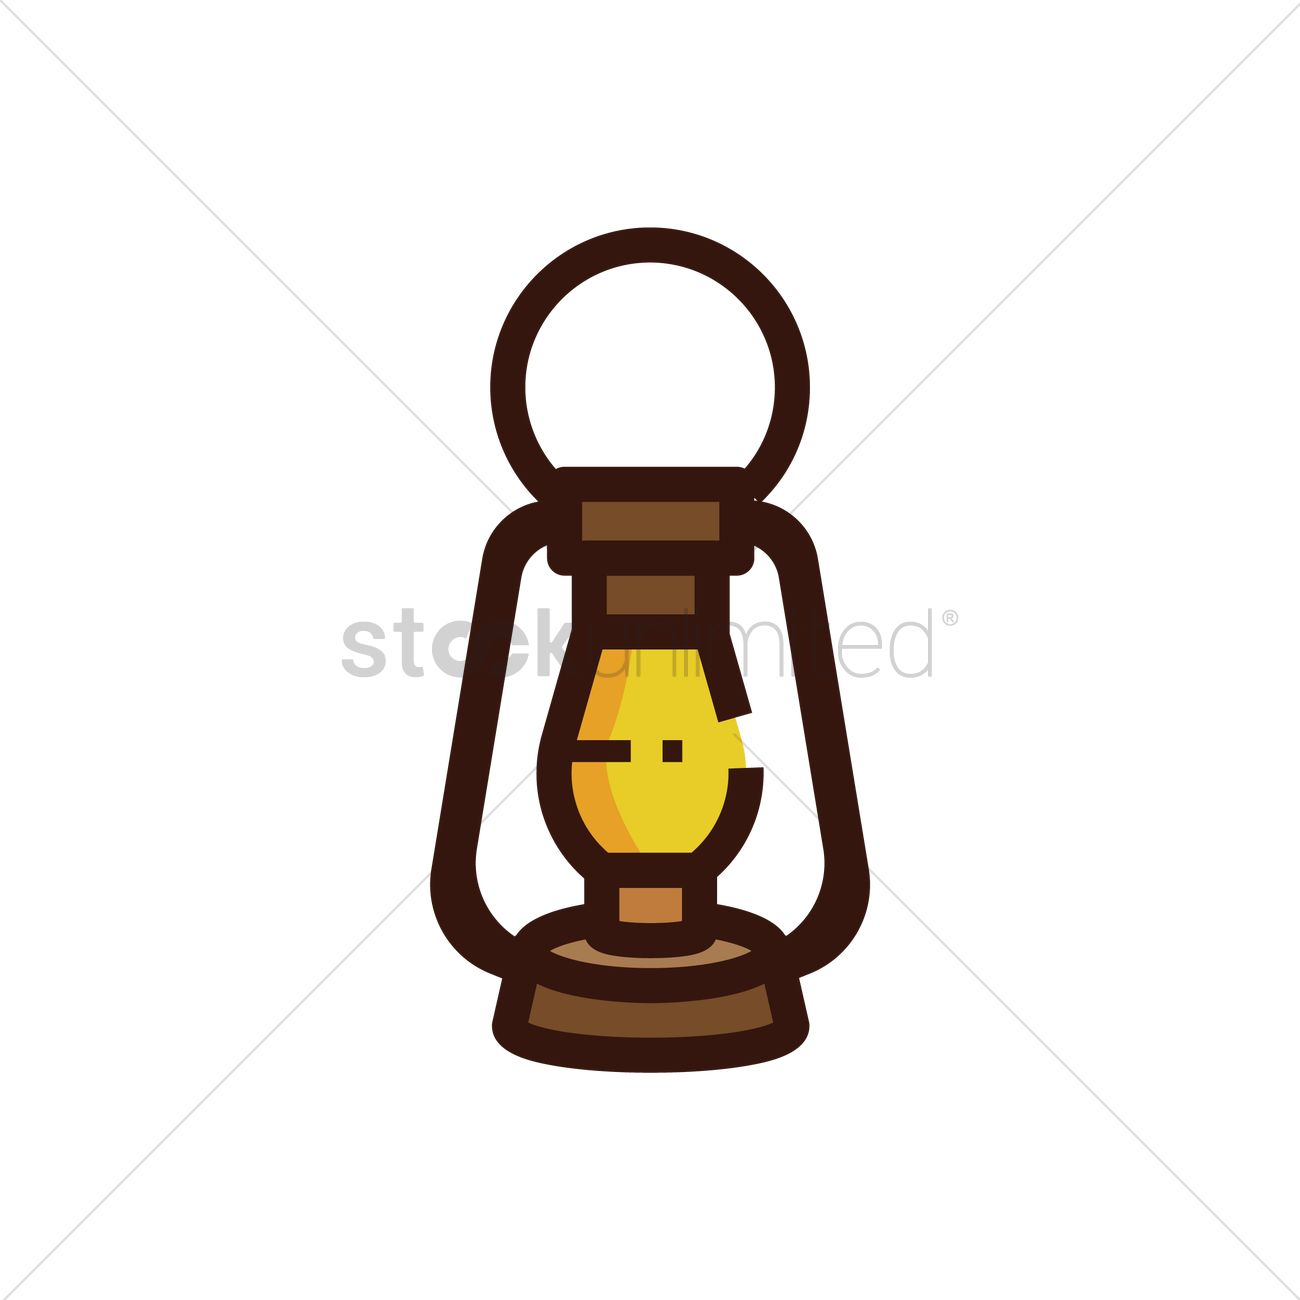 Oil lamp Vector Image - 1942446 | StockUnlimited for Oil Lamp Clip Art  157uhy